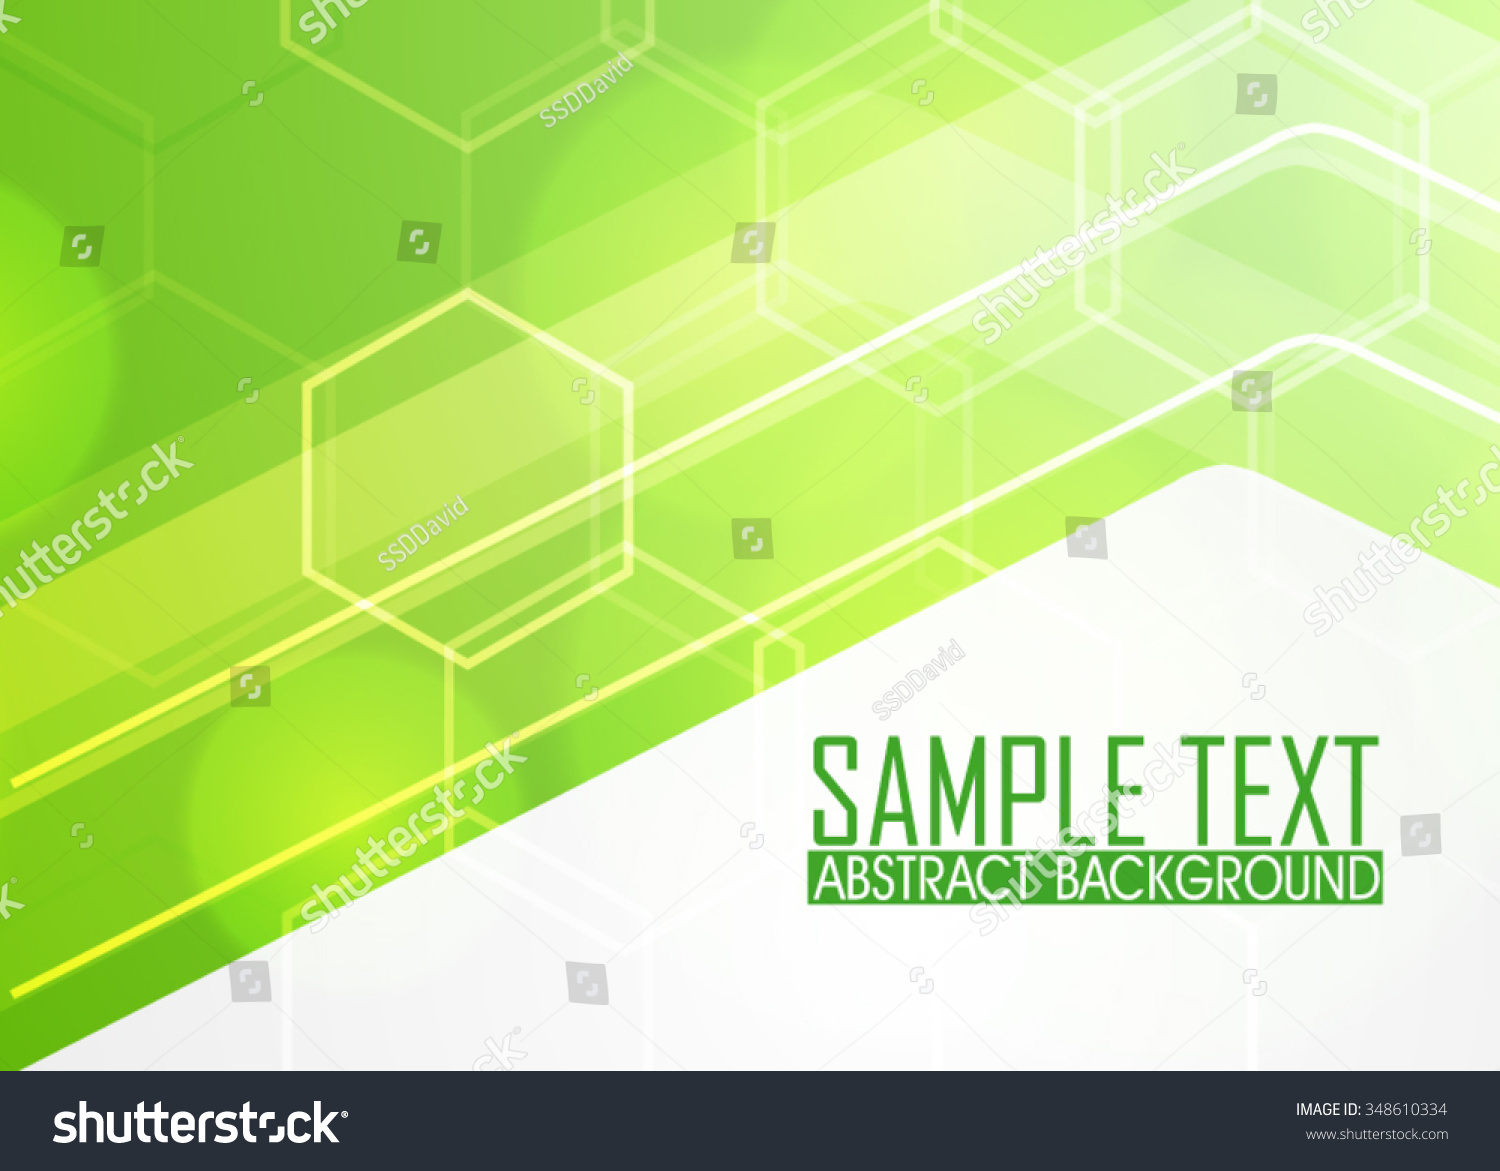 Green Abstract Background Illustration Template Business Stock ...